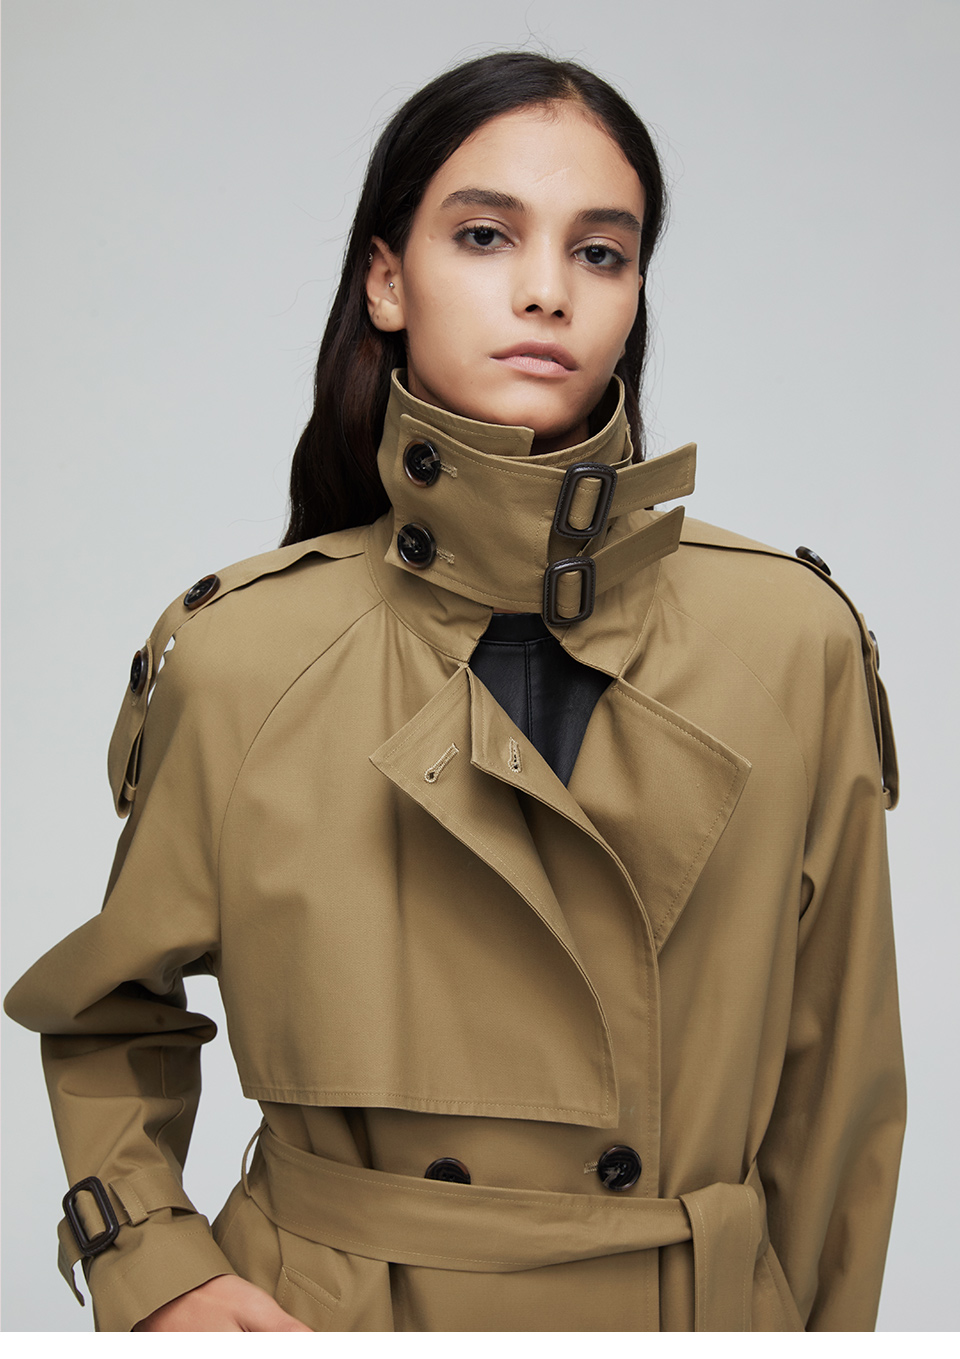 JAZZEVAR 19 New arrival autumn top trench coat women double breasted long outerwear for lady high quality overcoat women 9003 1